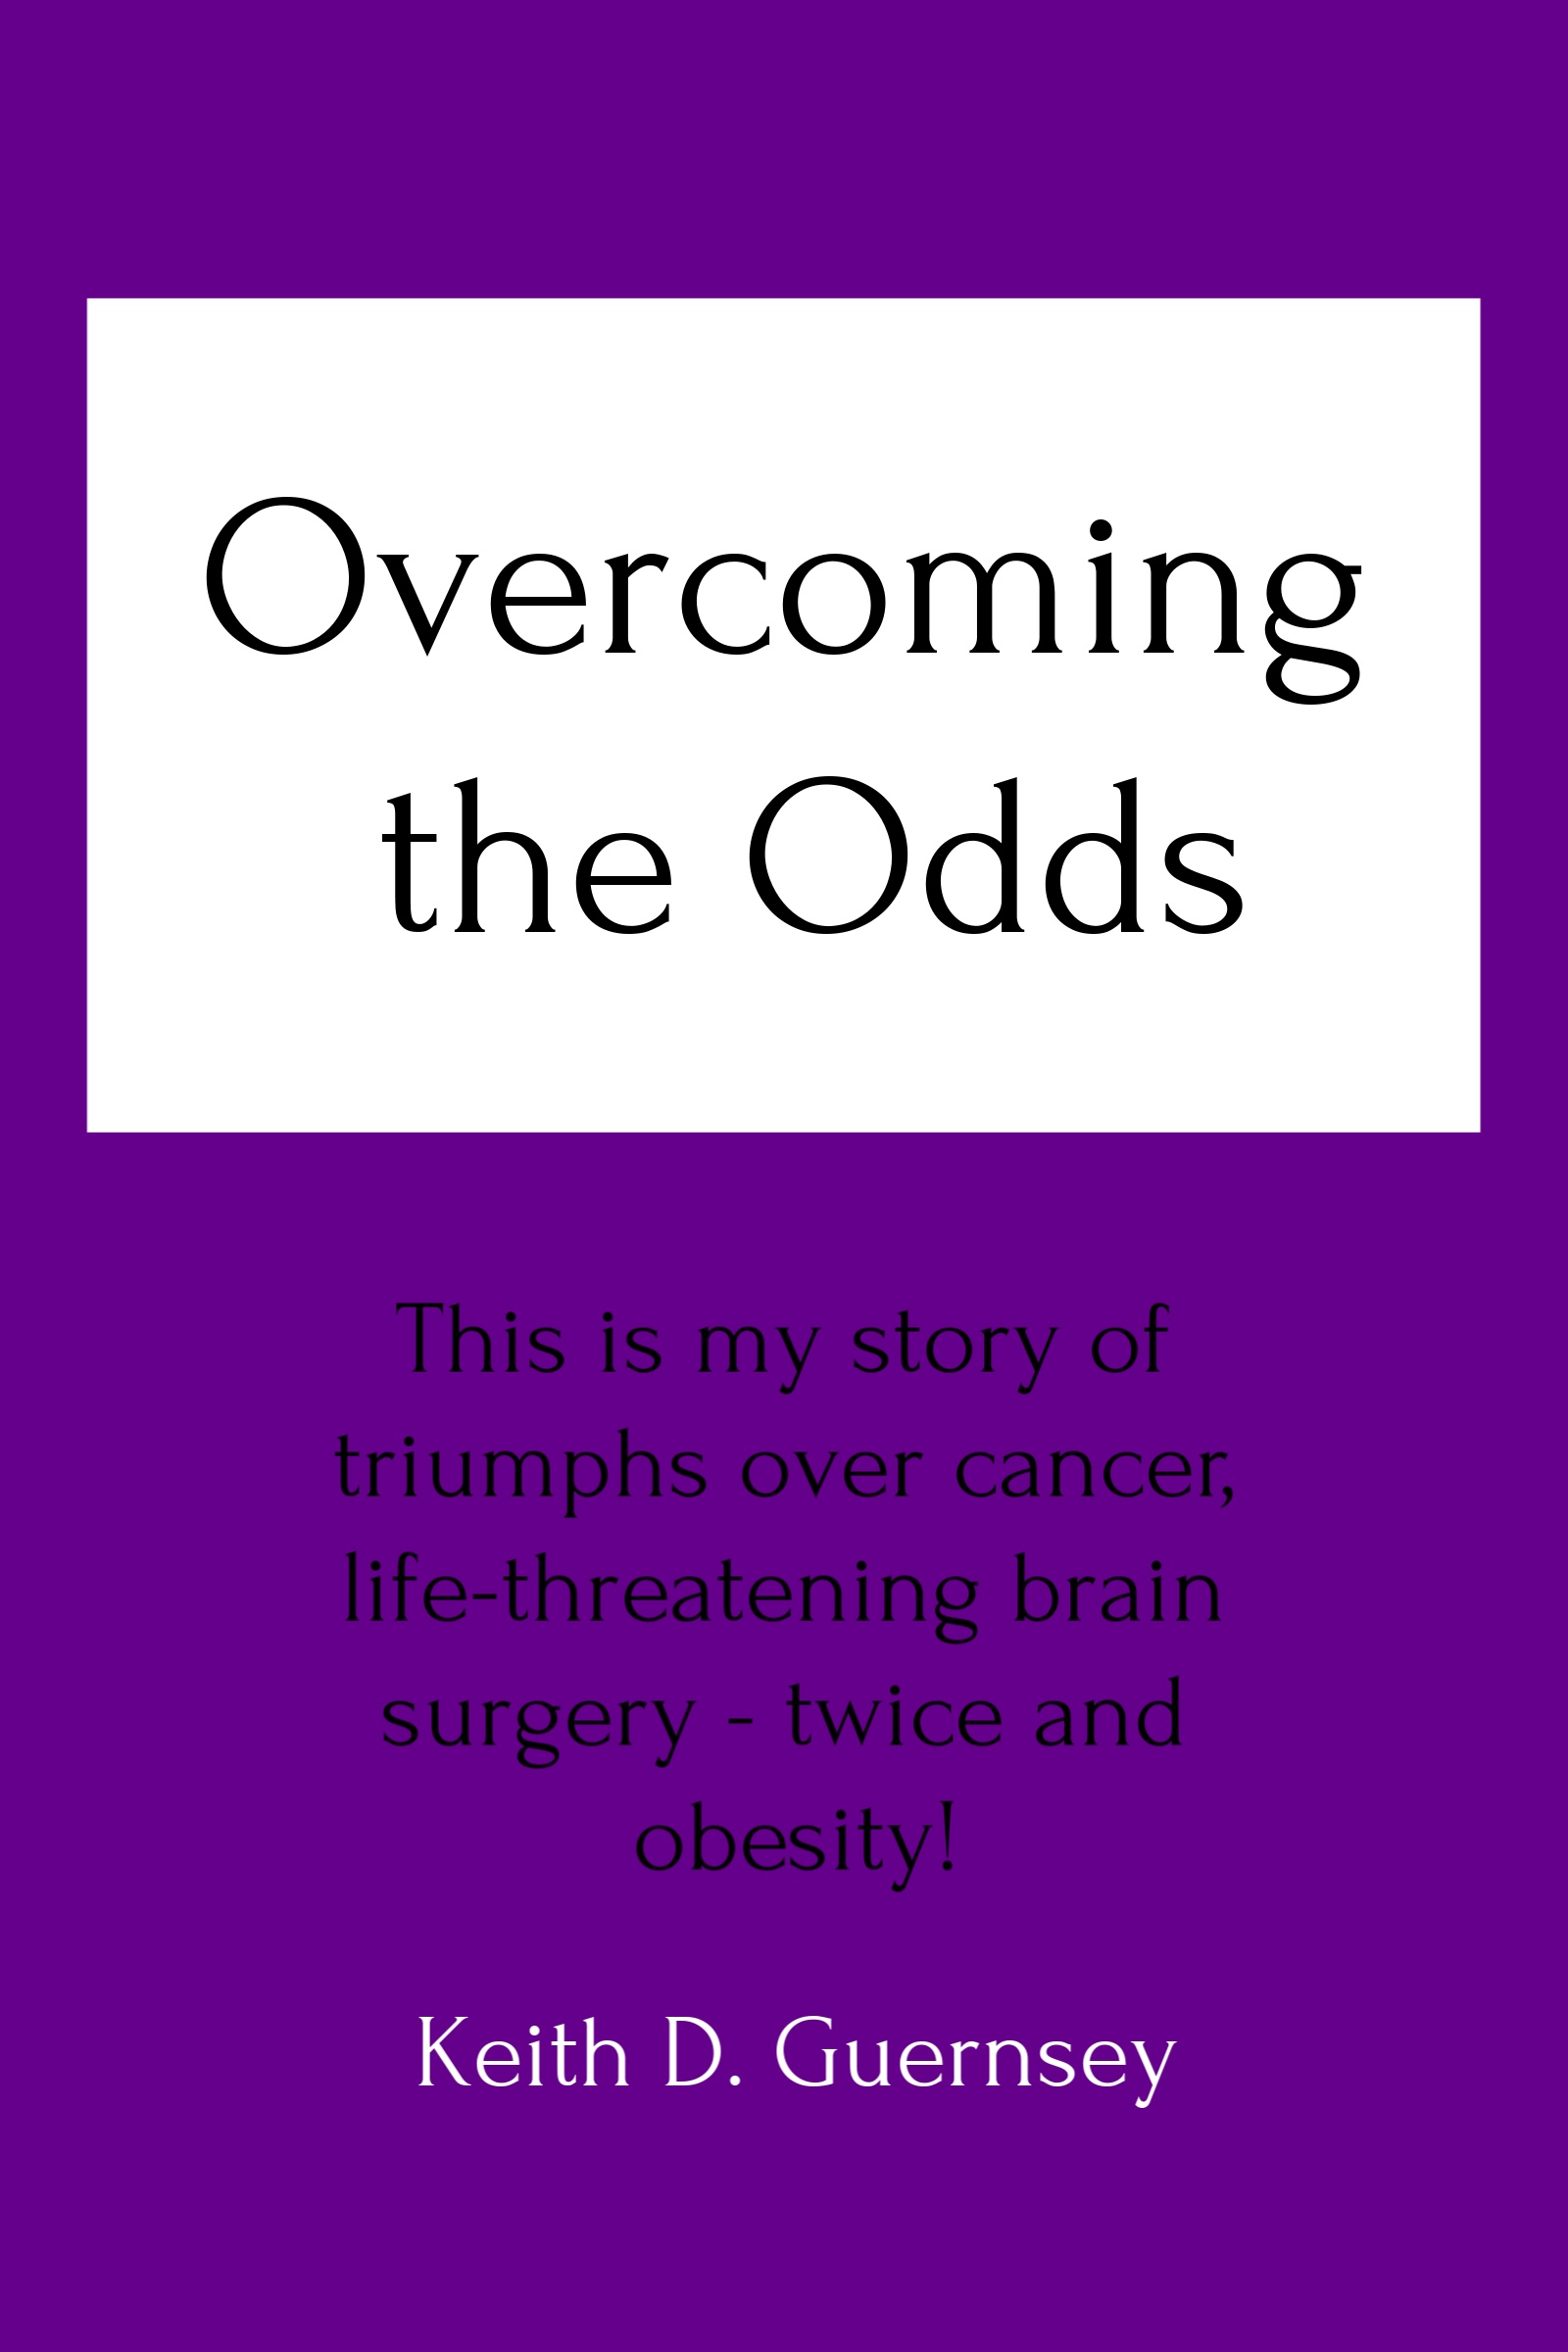 Overcoming the Odds-My story of triumphs over cancer, life-threatening brain surgery (twice), and obesity